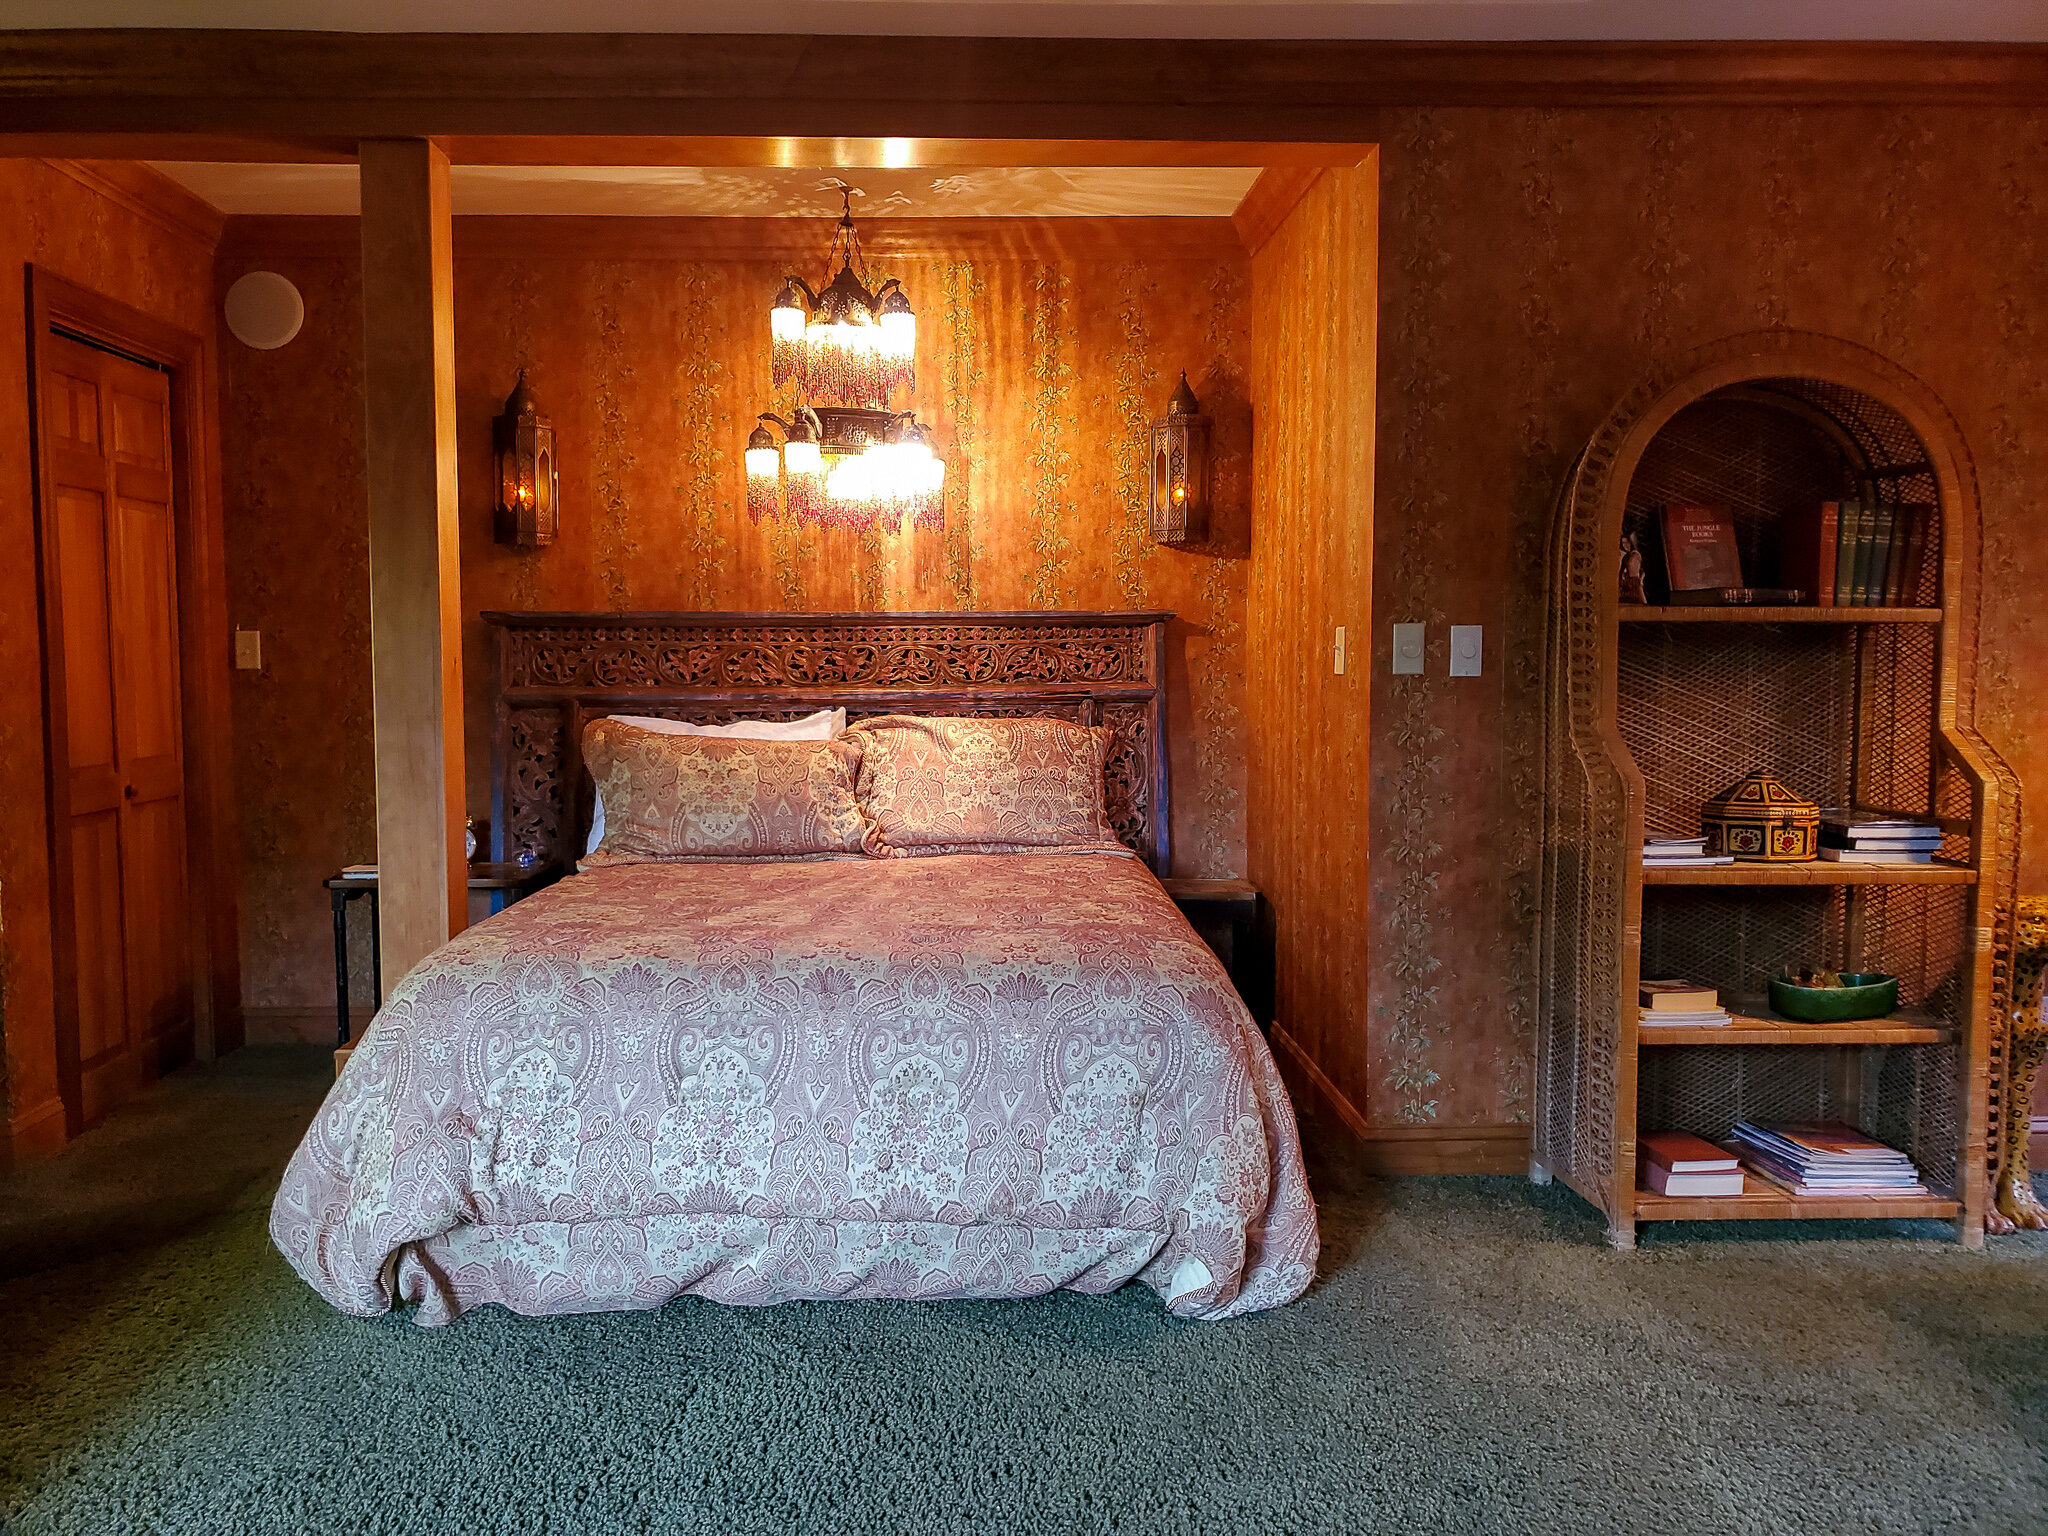 The Rudyard Kipling suite at the Innisfree Bed and Breakfast near Lake Glenville (c) Anna Lanfreschi